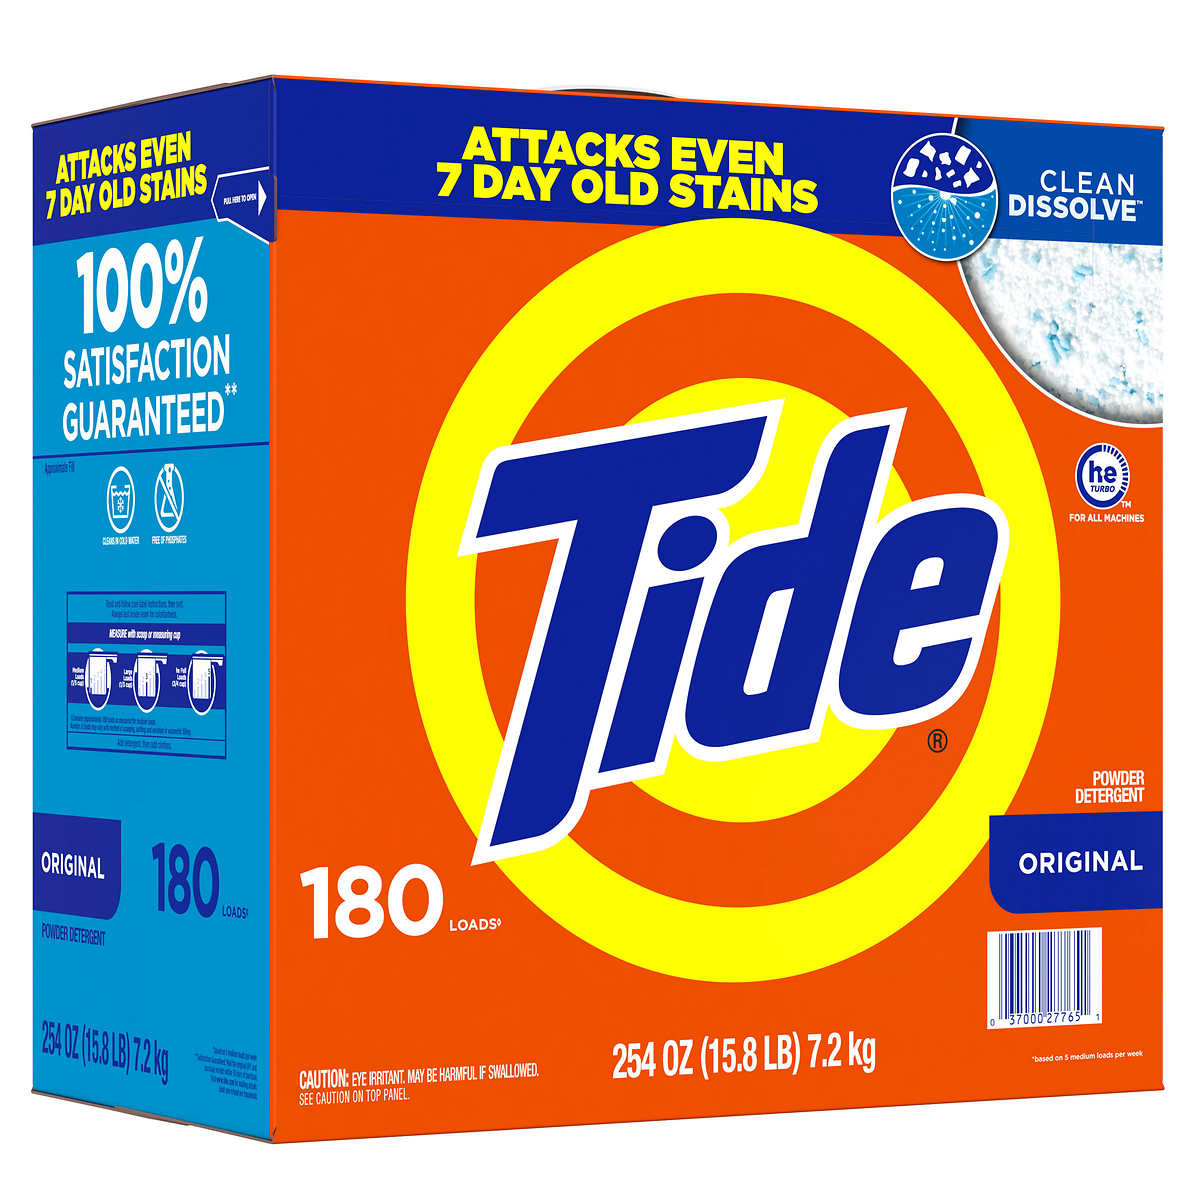 Is arm and hammer powder laundry detergent he - Tide Powder He 180 Loads